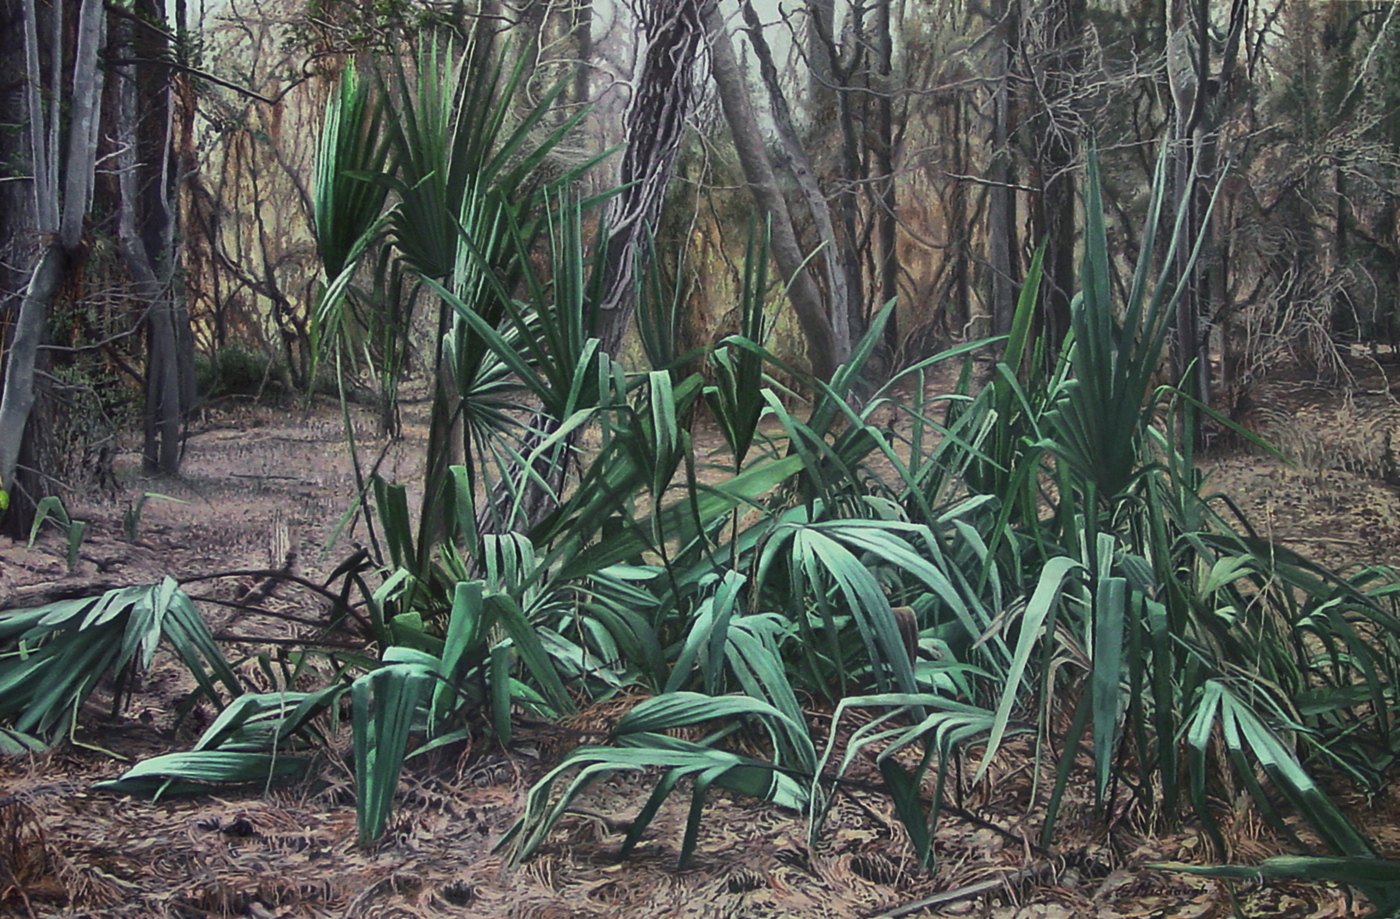 a gathering of palmettos